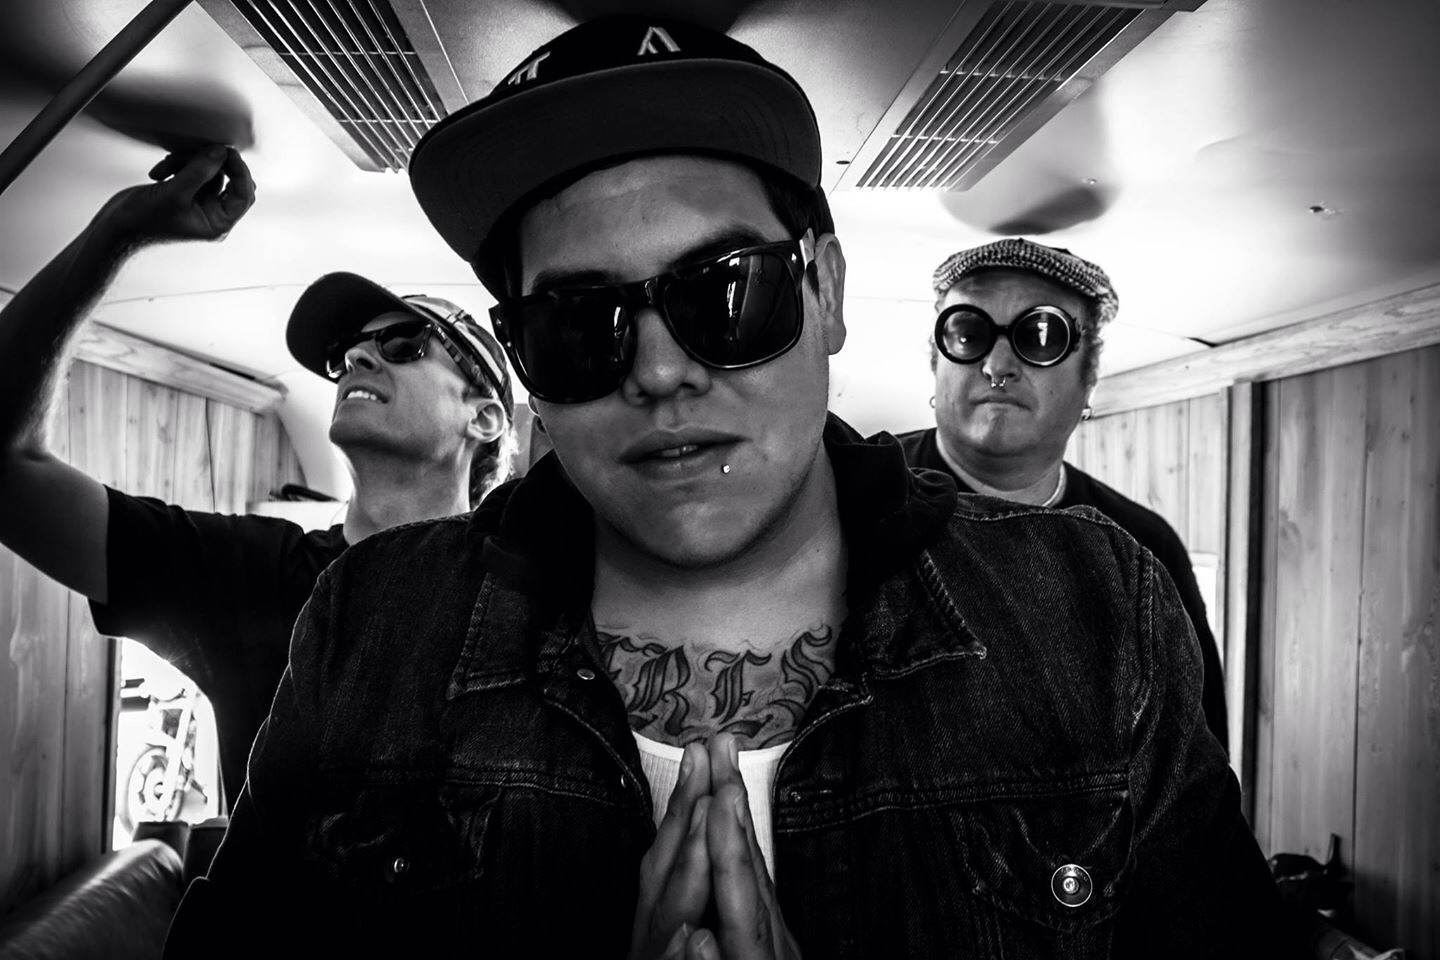 Sublime with Rome is one of two bands headliningthe OZ Music Fest